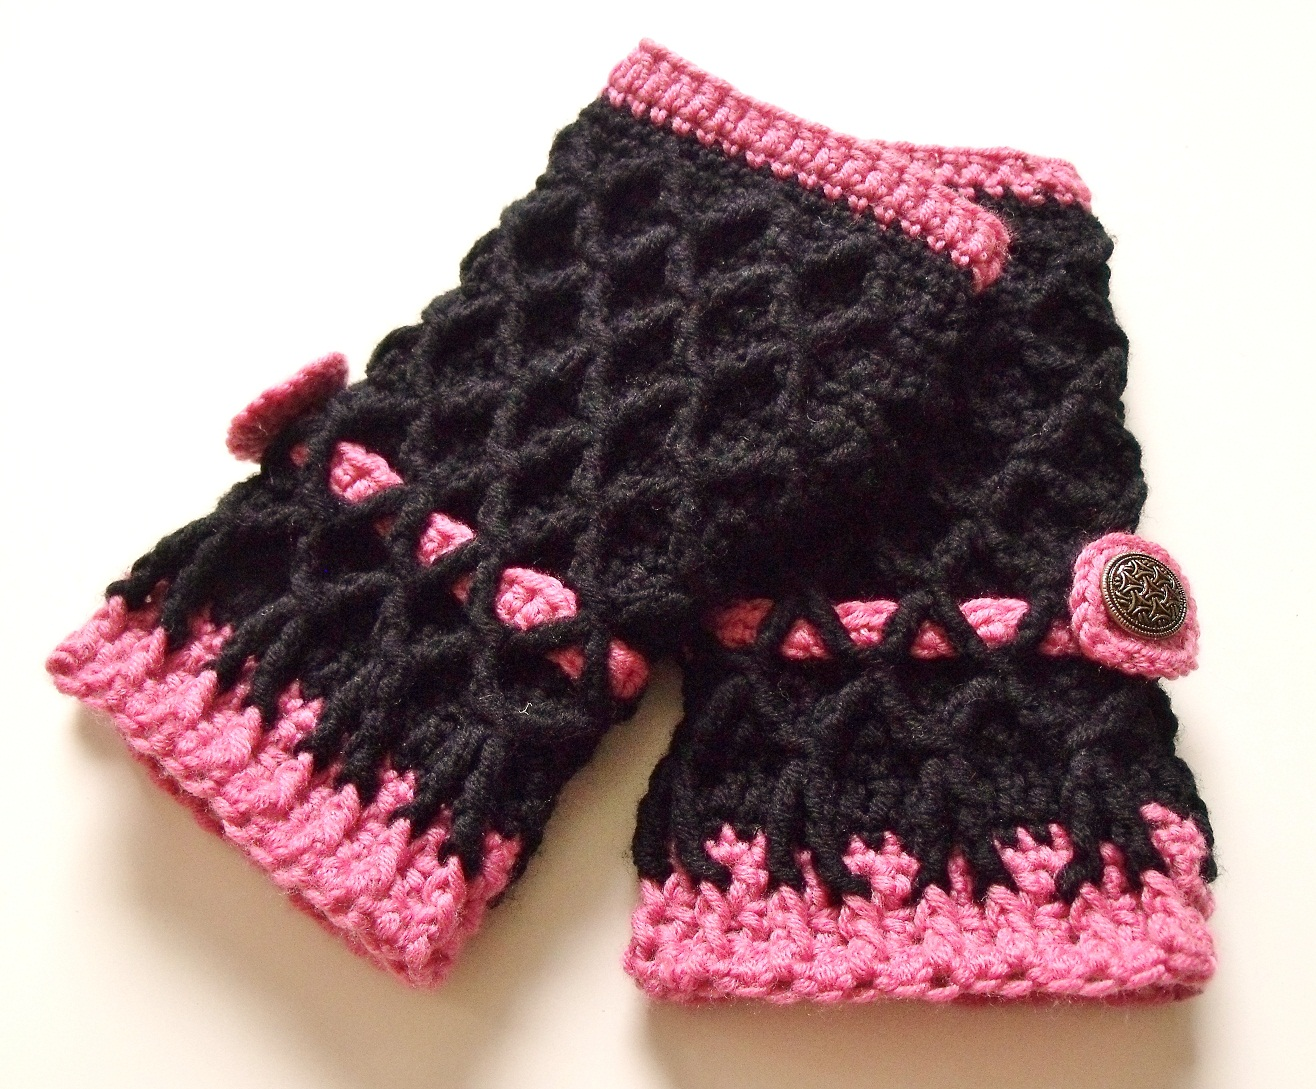 Microcknit Creations Give Me A Hand And I Will Give You A Mitten